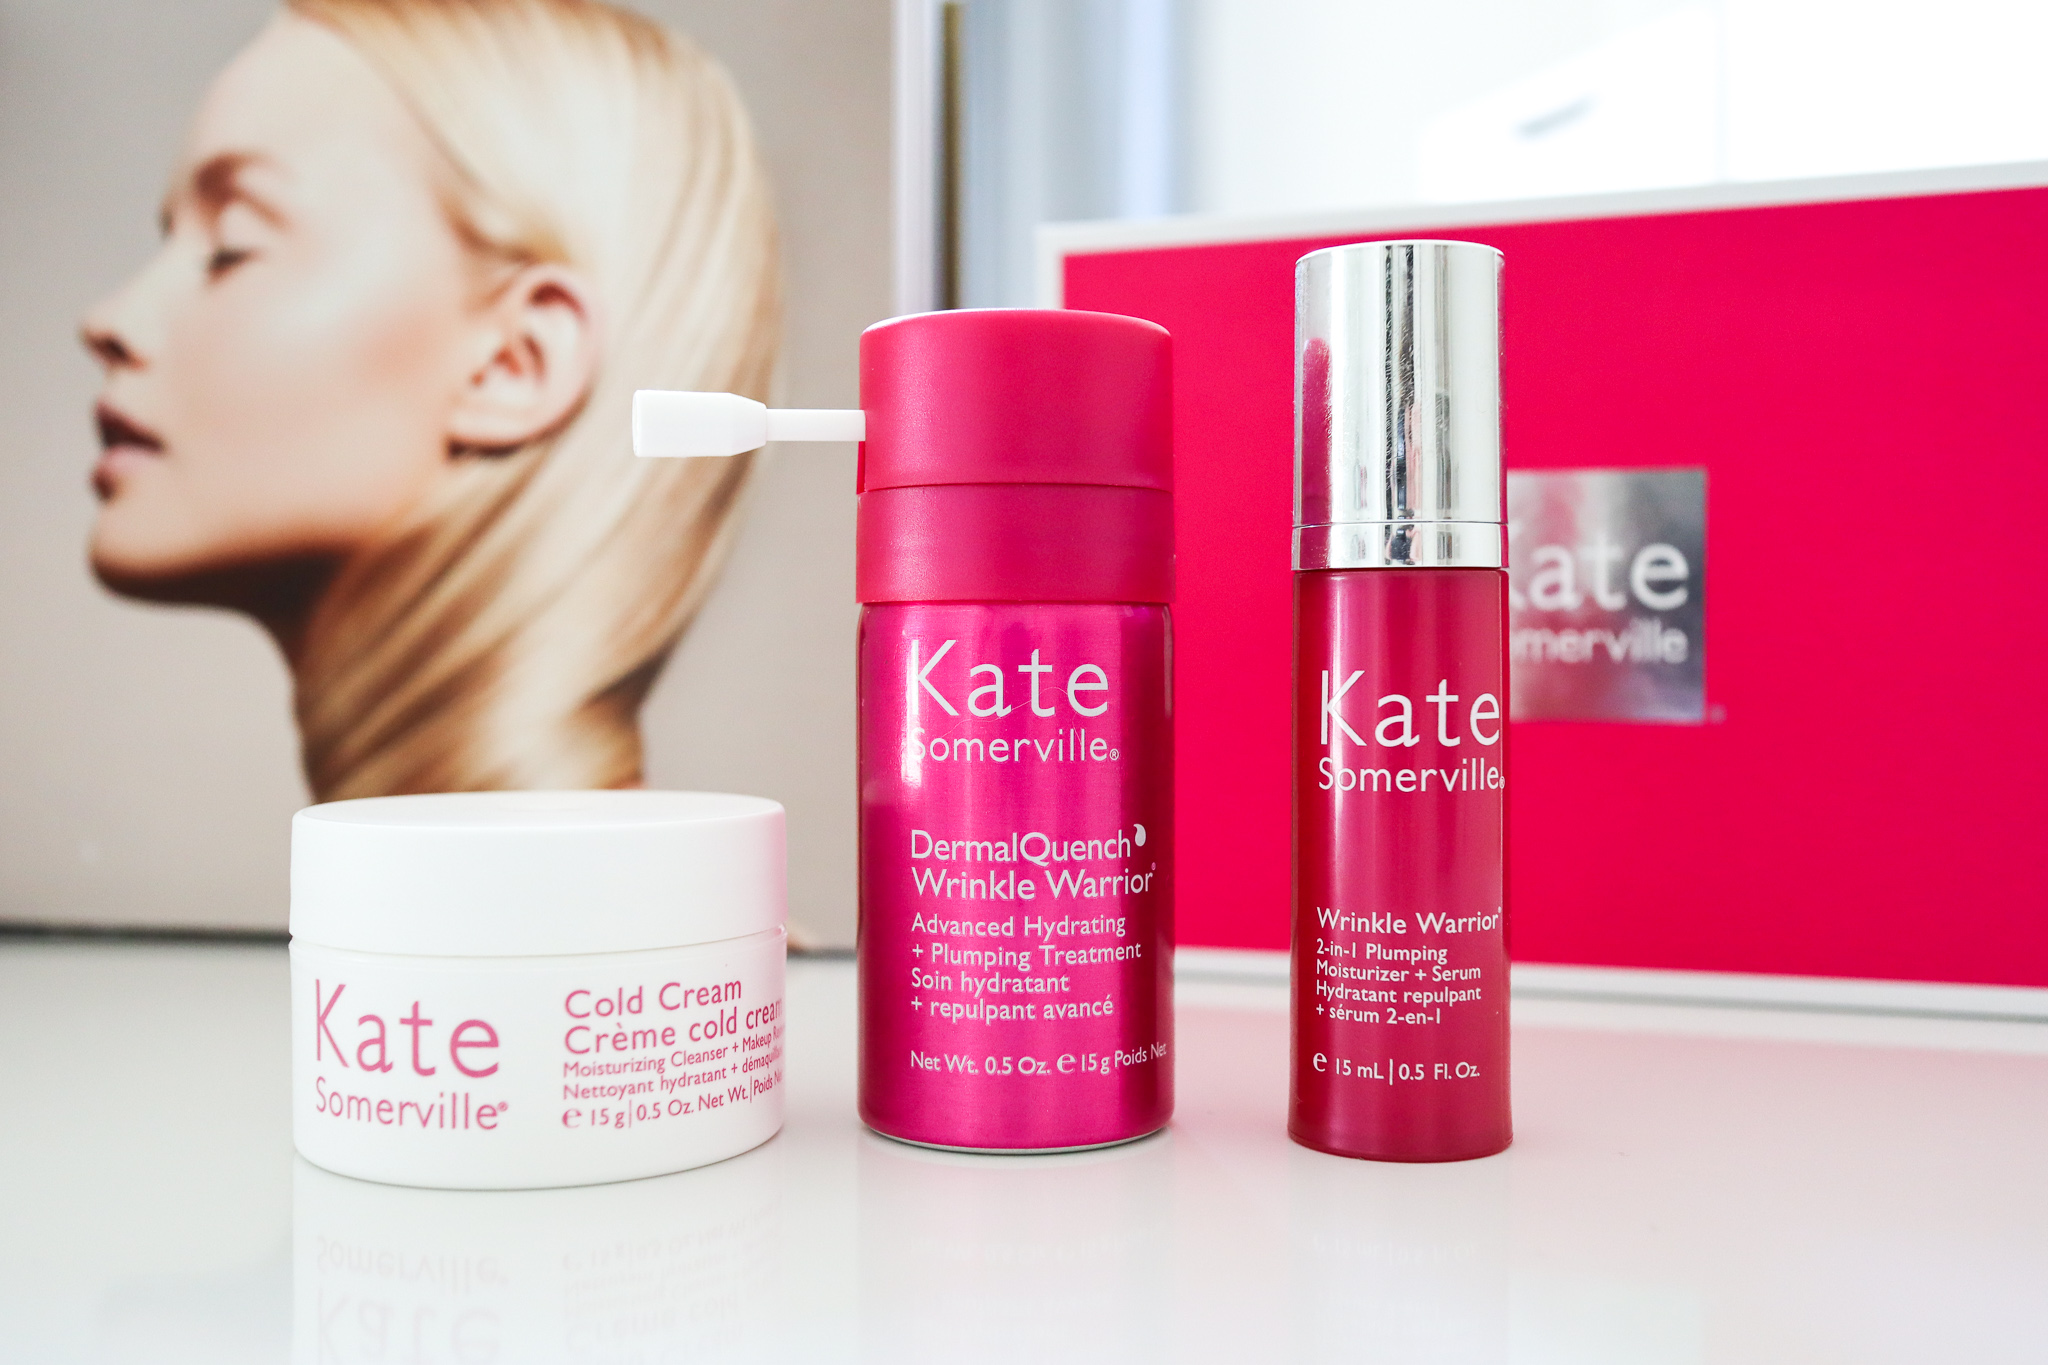 Kate Somerville Wrinkle Warrior Try Me Kit